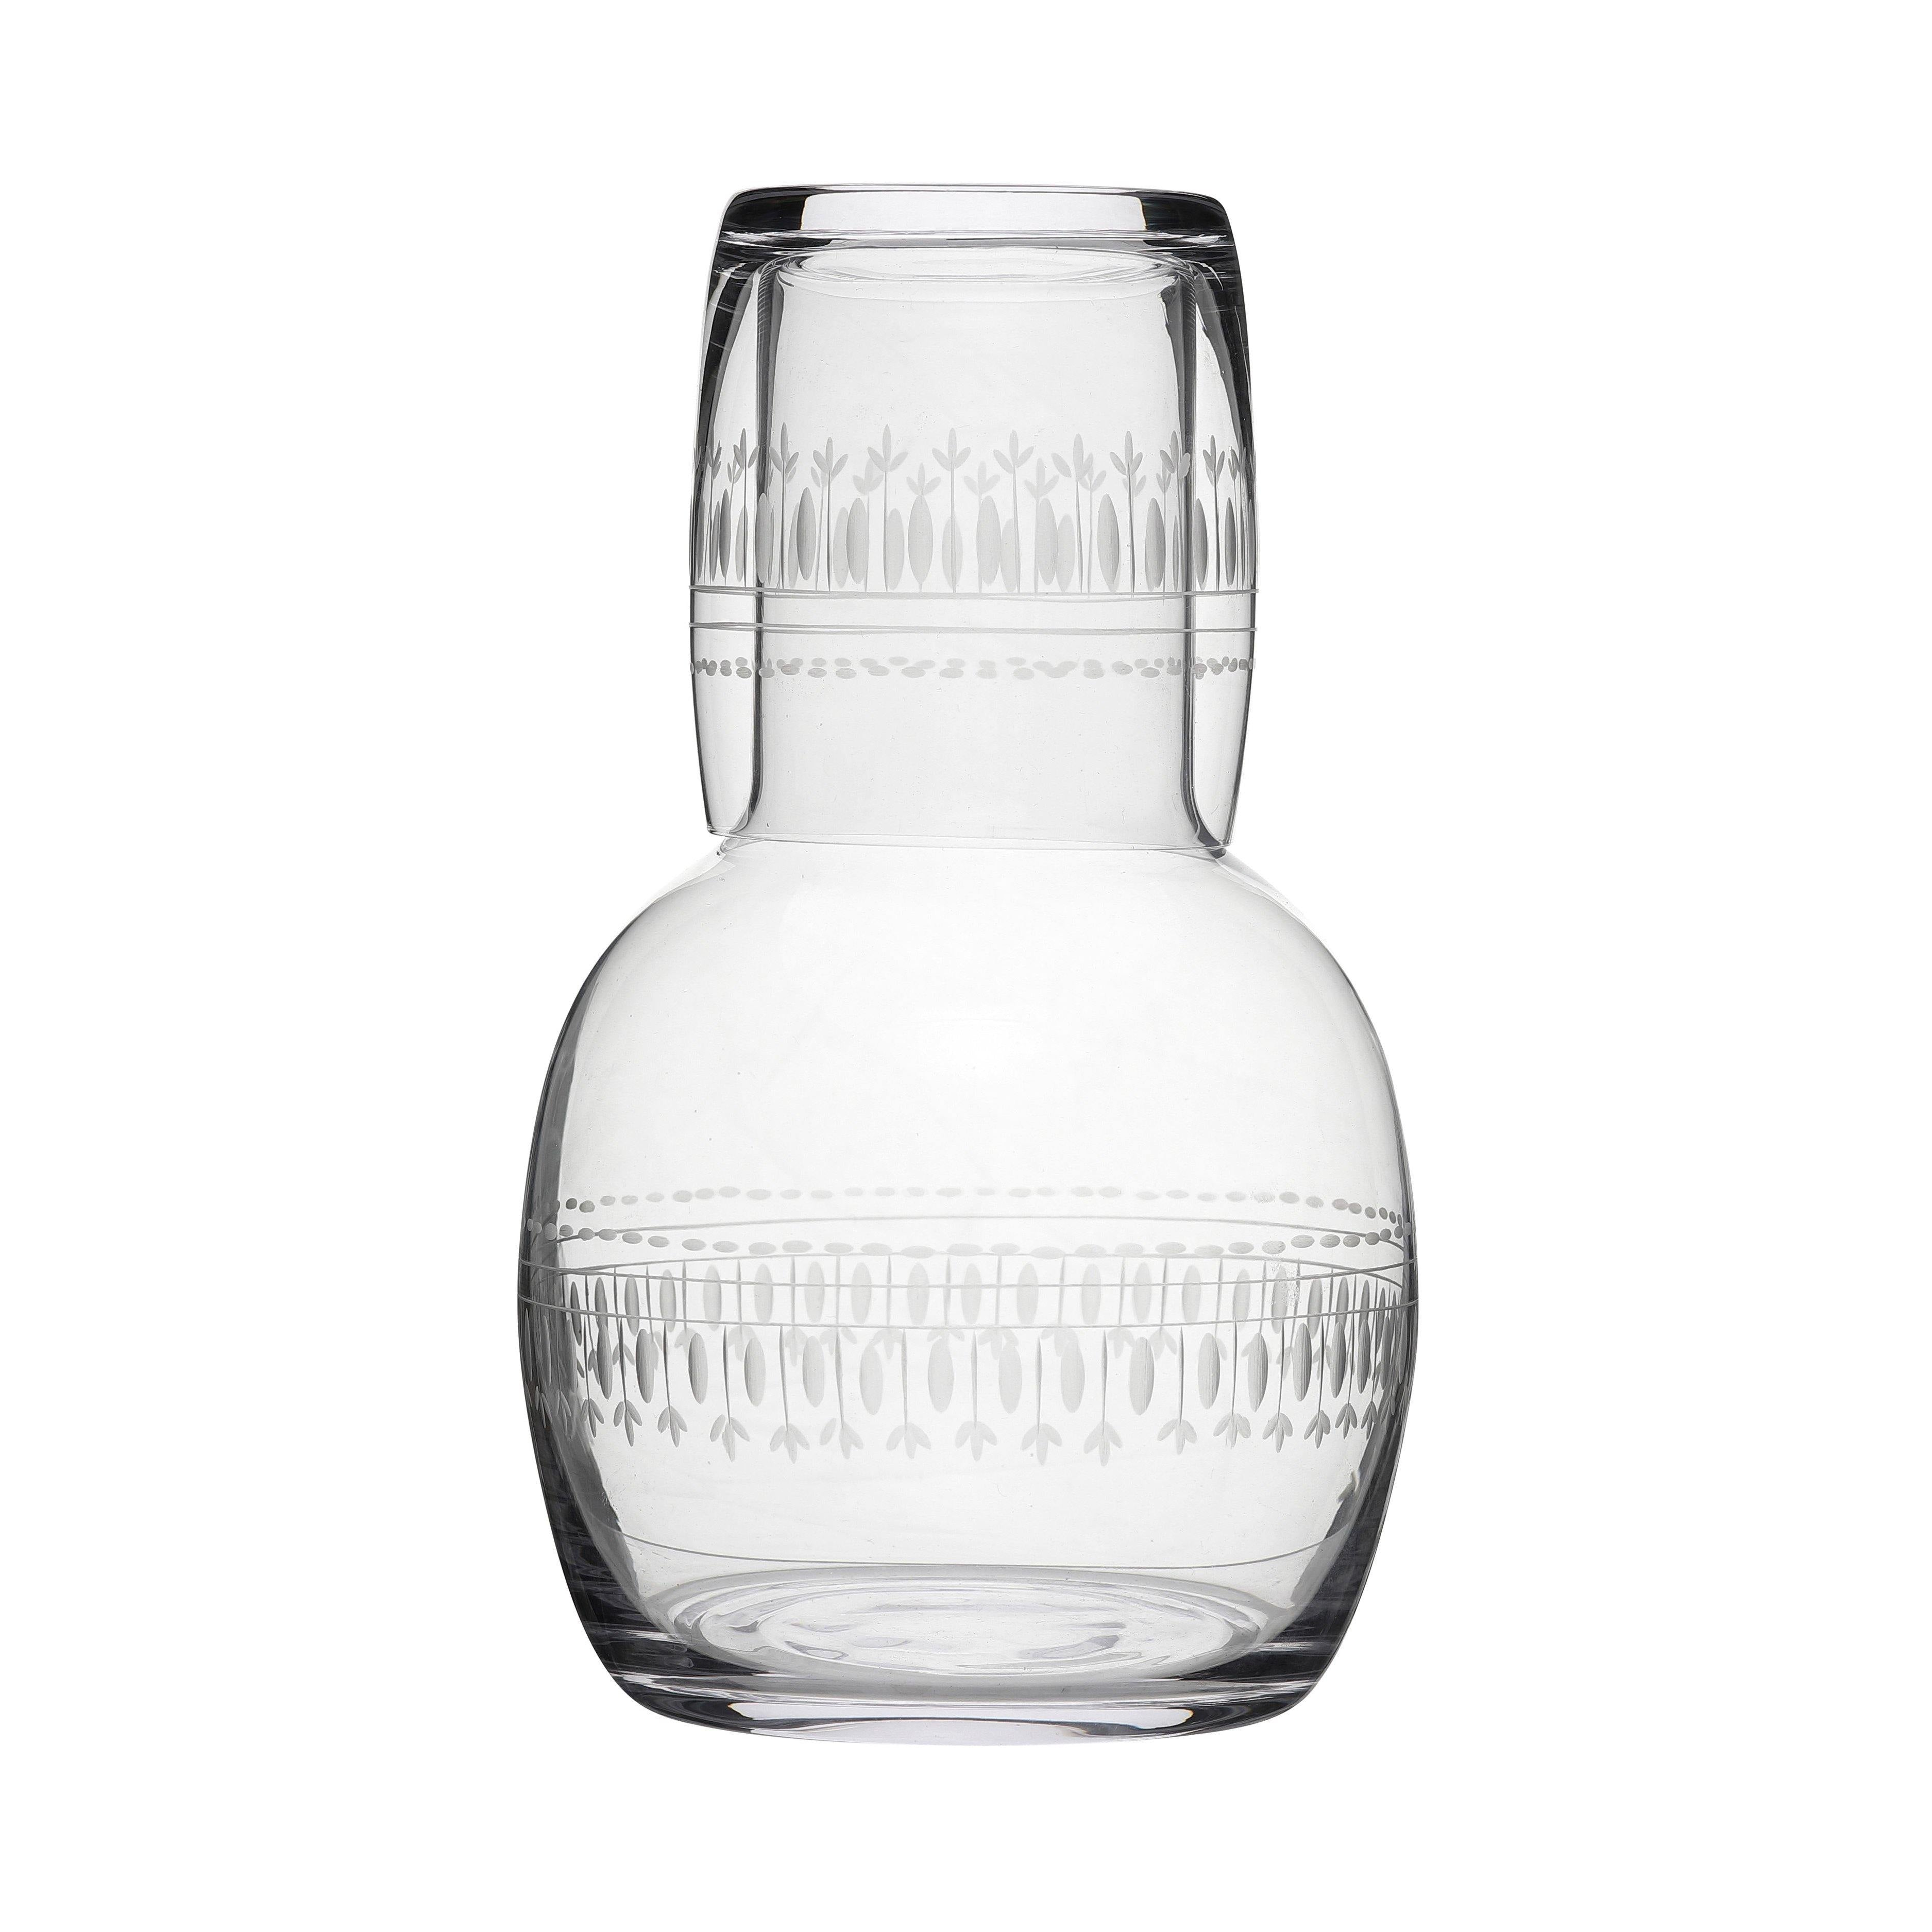 Carafe with Glass and Oval Design